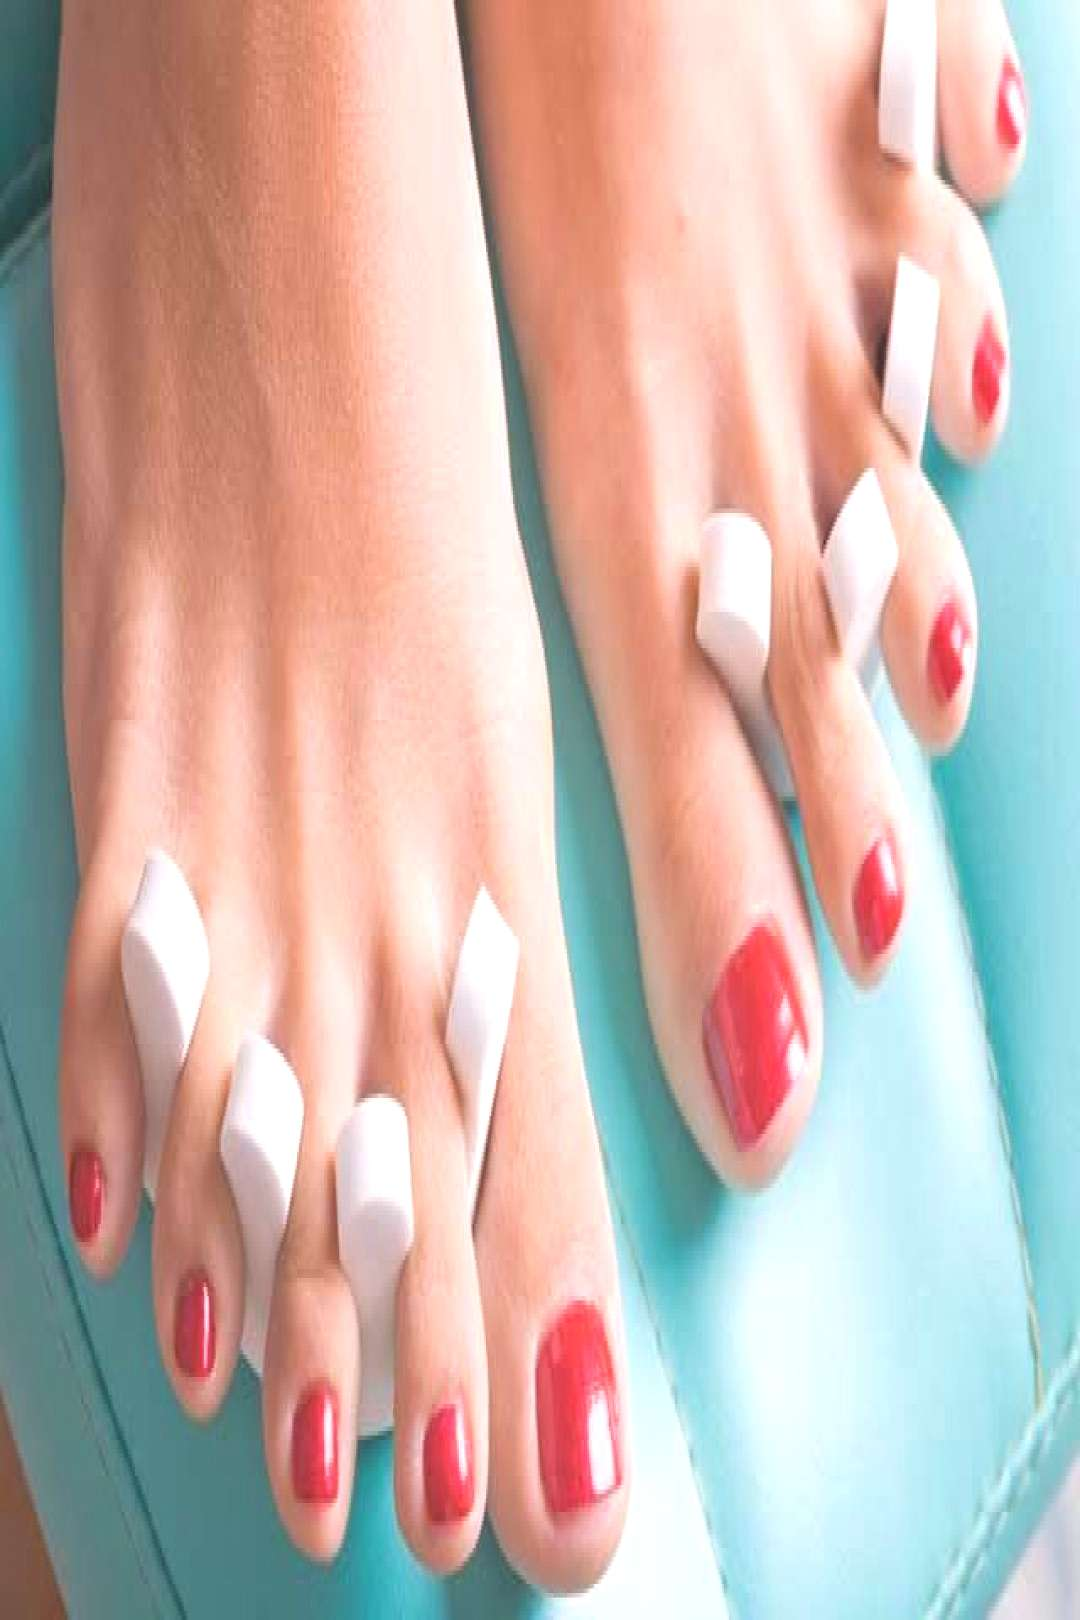 Génial  Pic Soin des Ongles de pieds Astuces,The most up to date Pic Nail Care Home Reflect... G